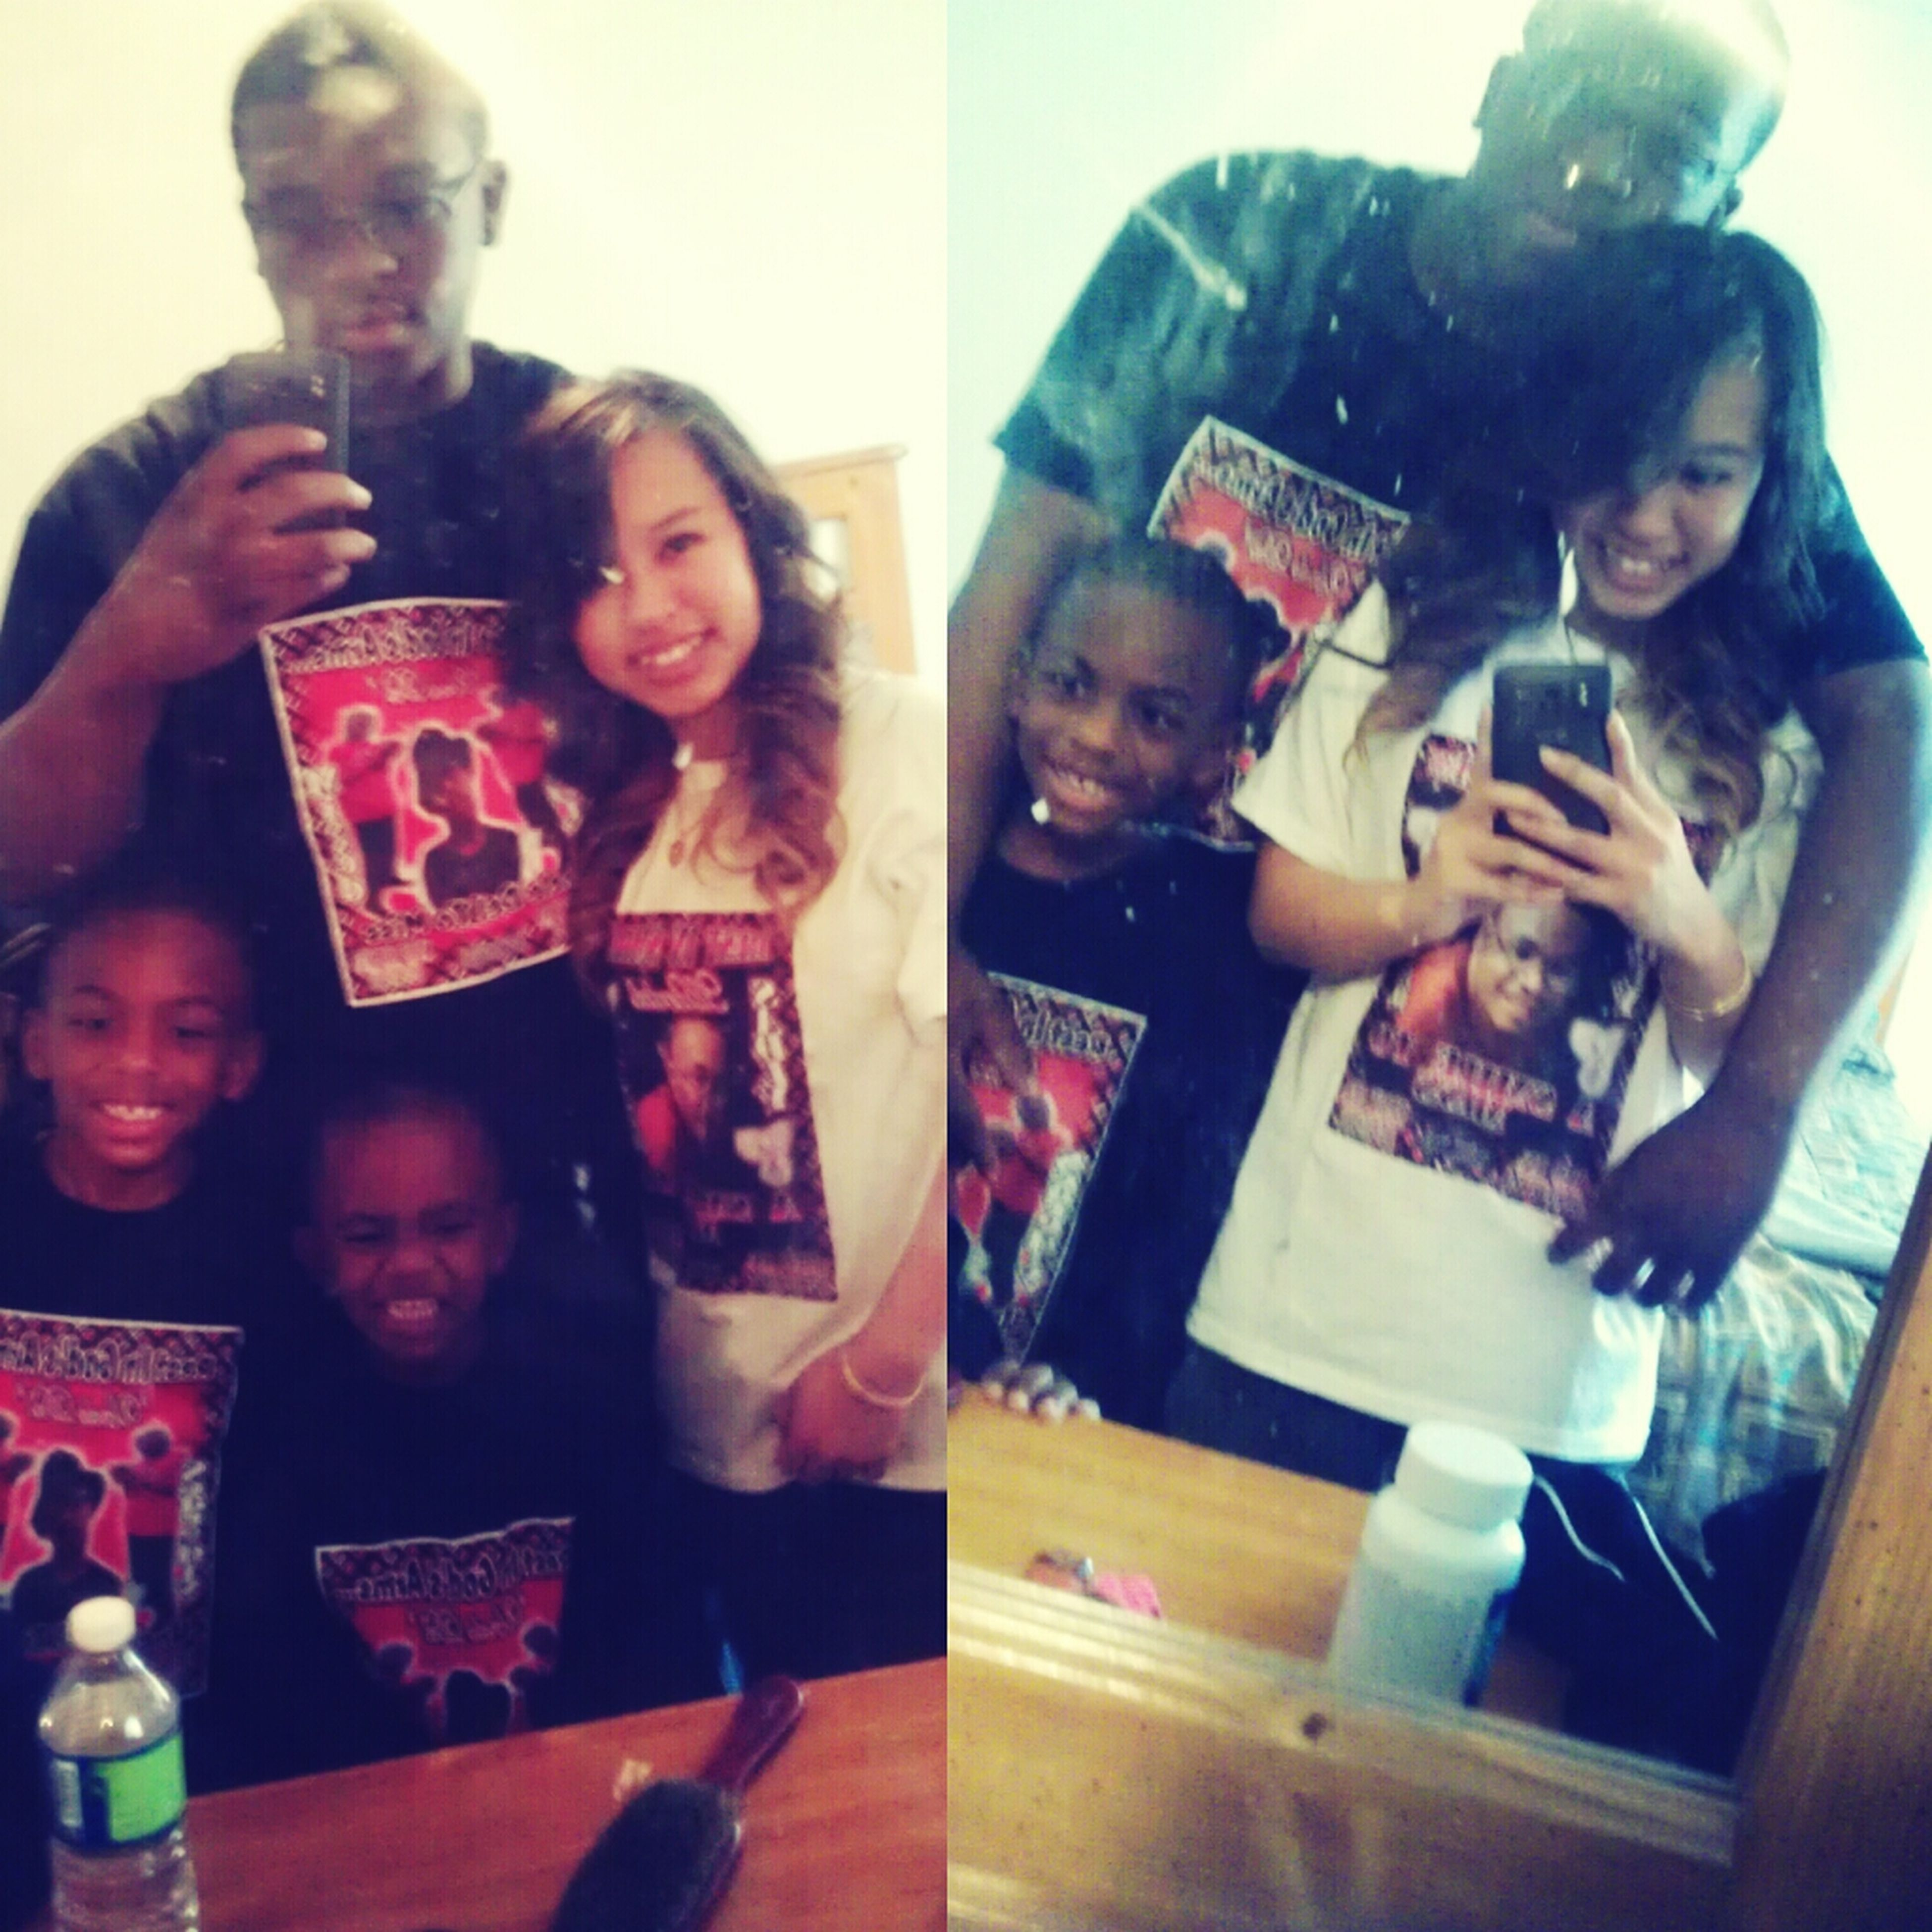 Funeral Day With Pj Rodney N Chance. N Hardel Yu Will B In My Heart Forever <3